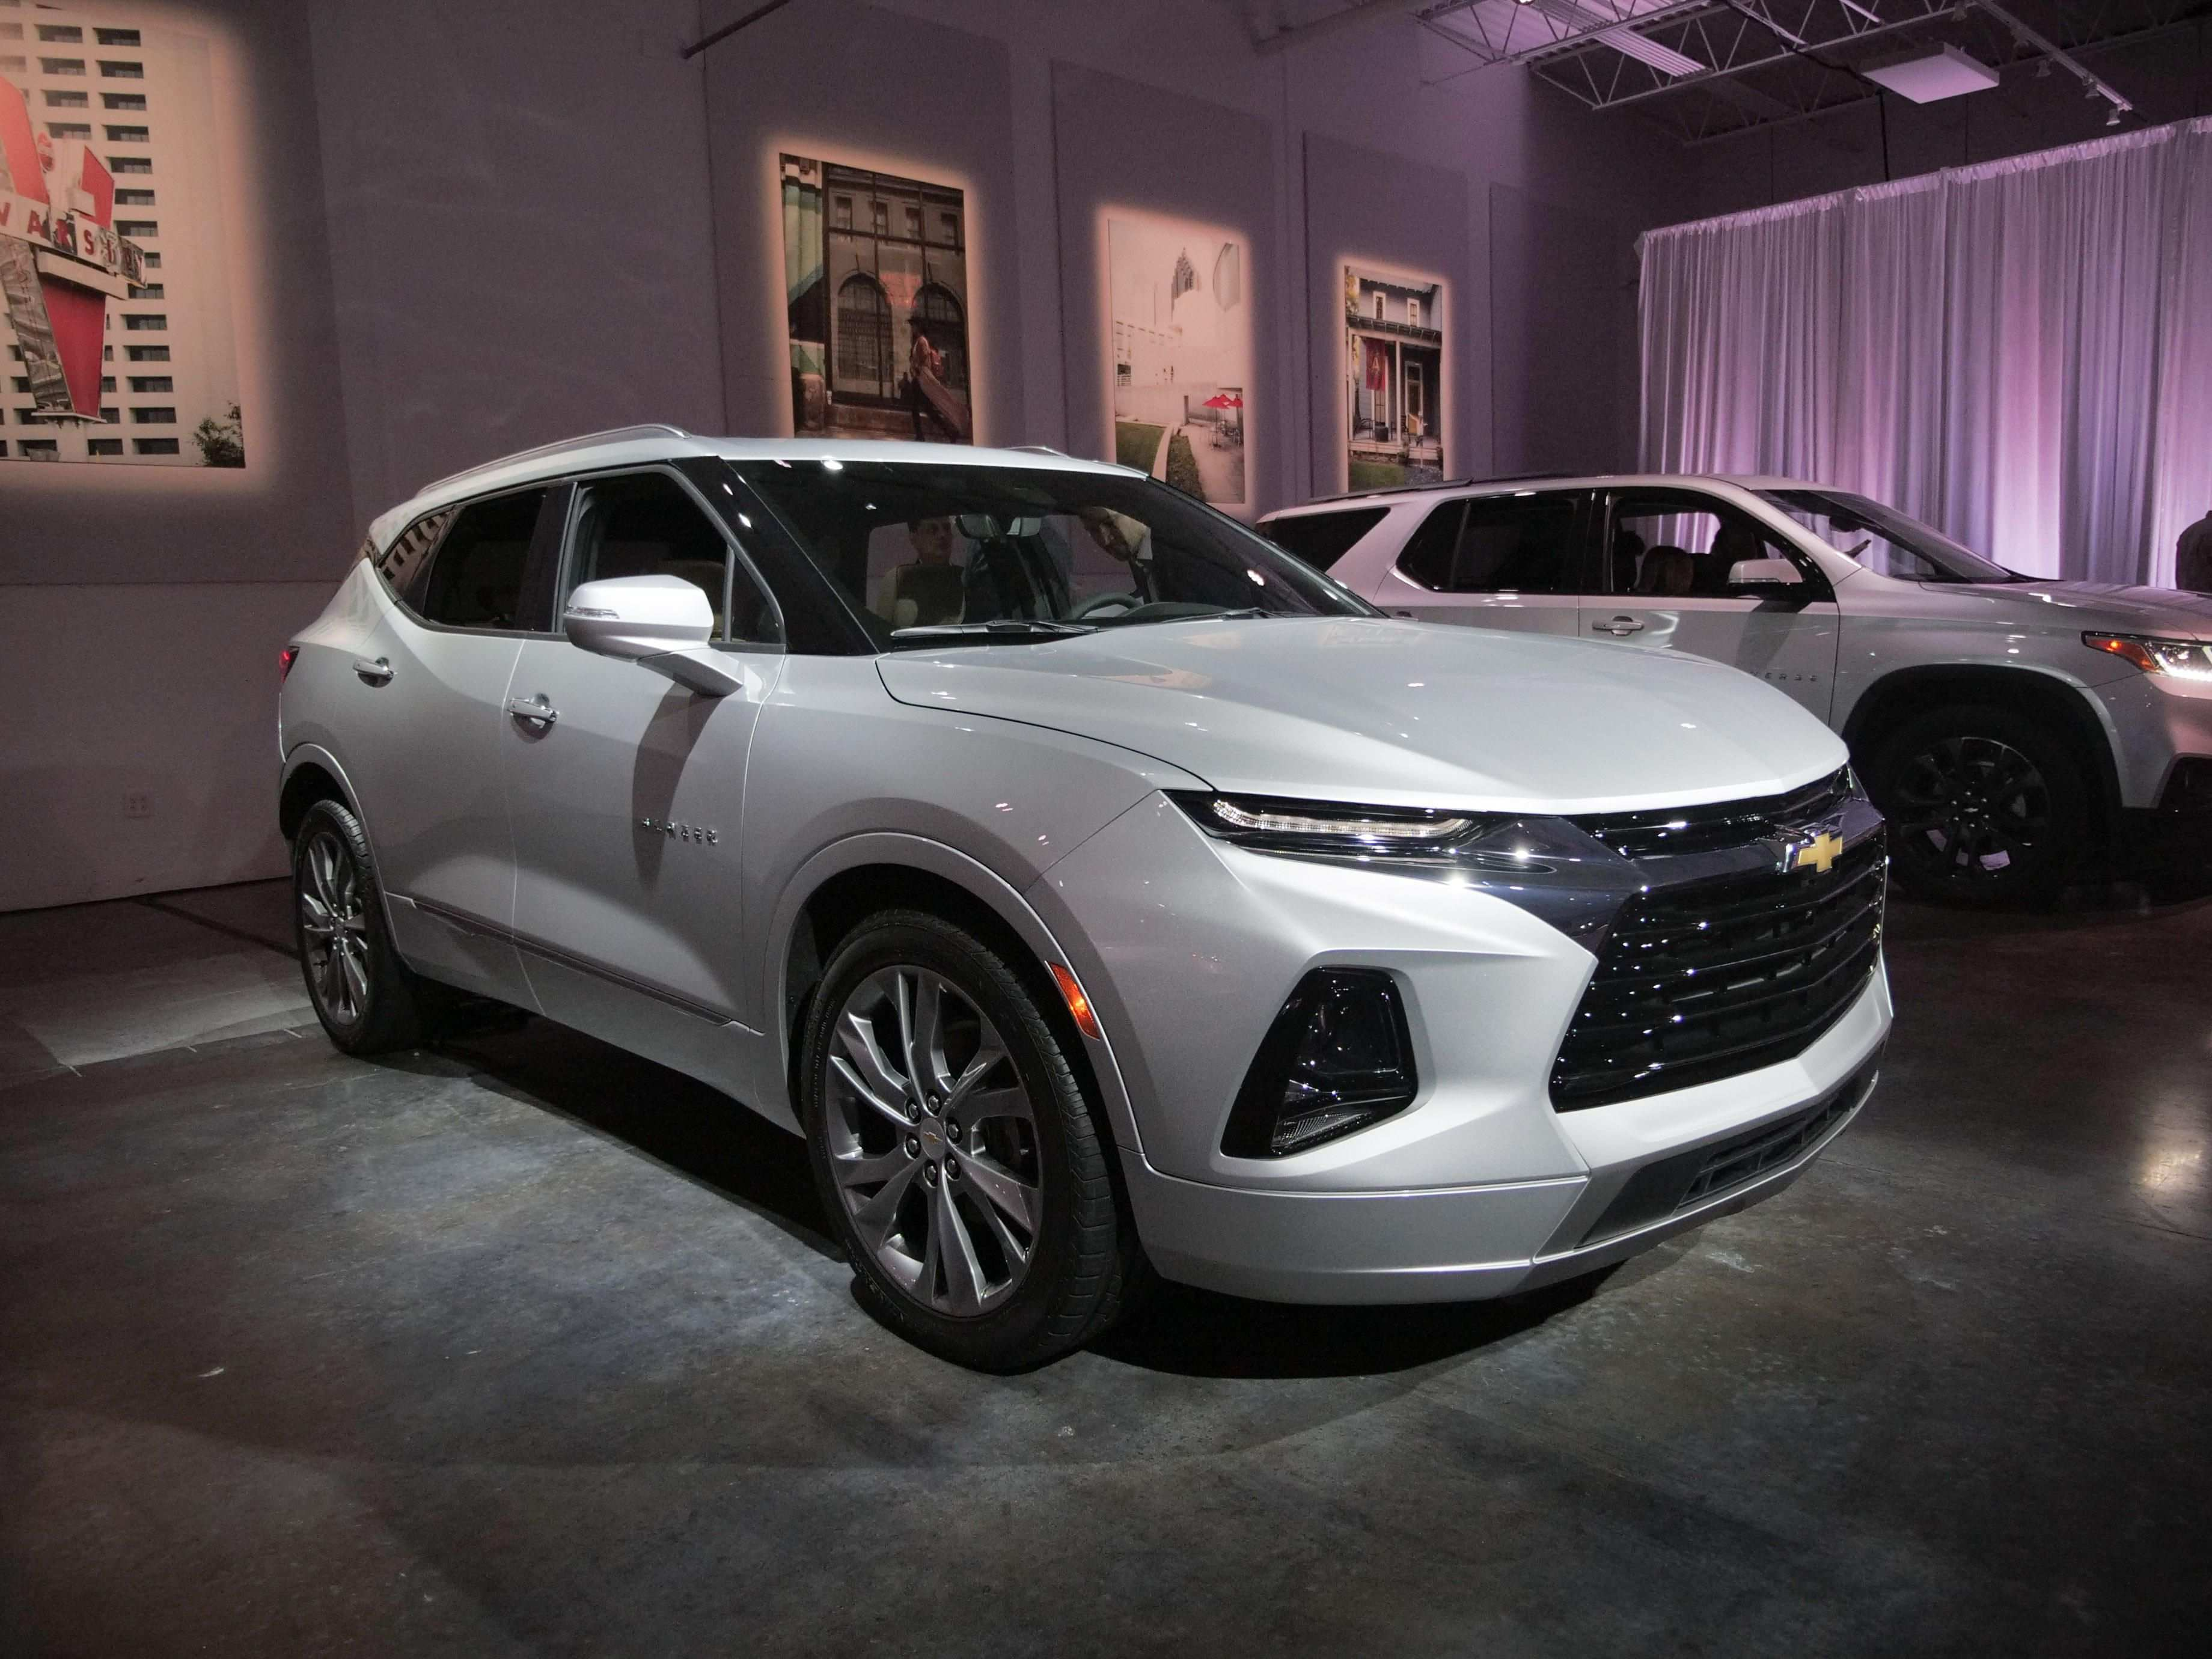 70 All New 2019 Chevy Trailblazer Ss Specs